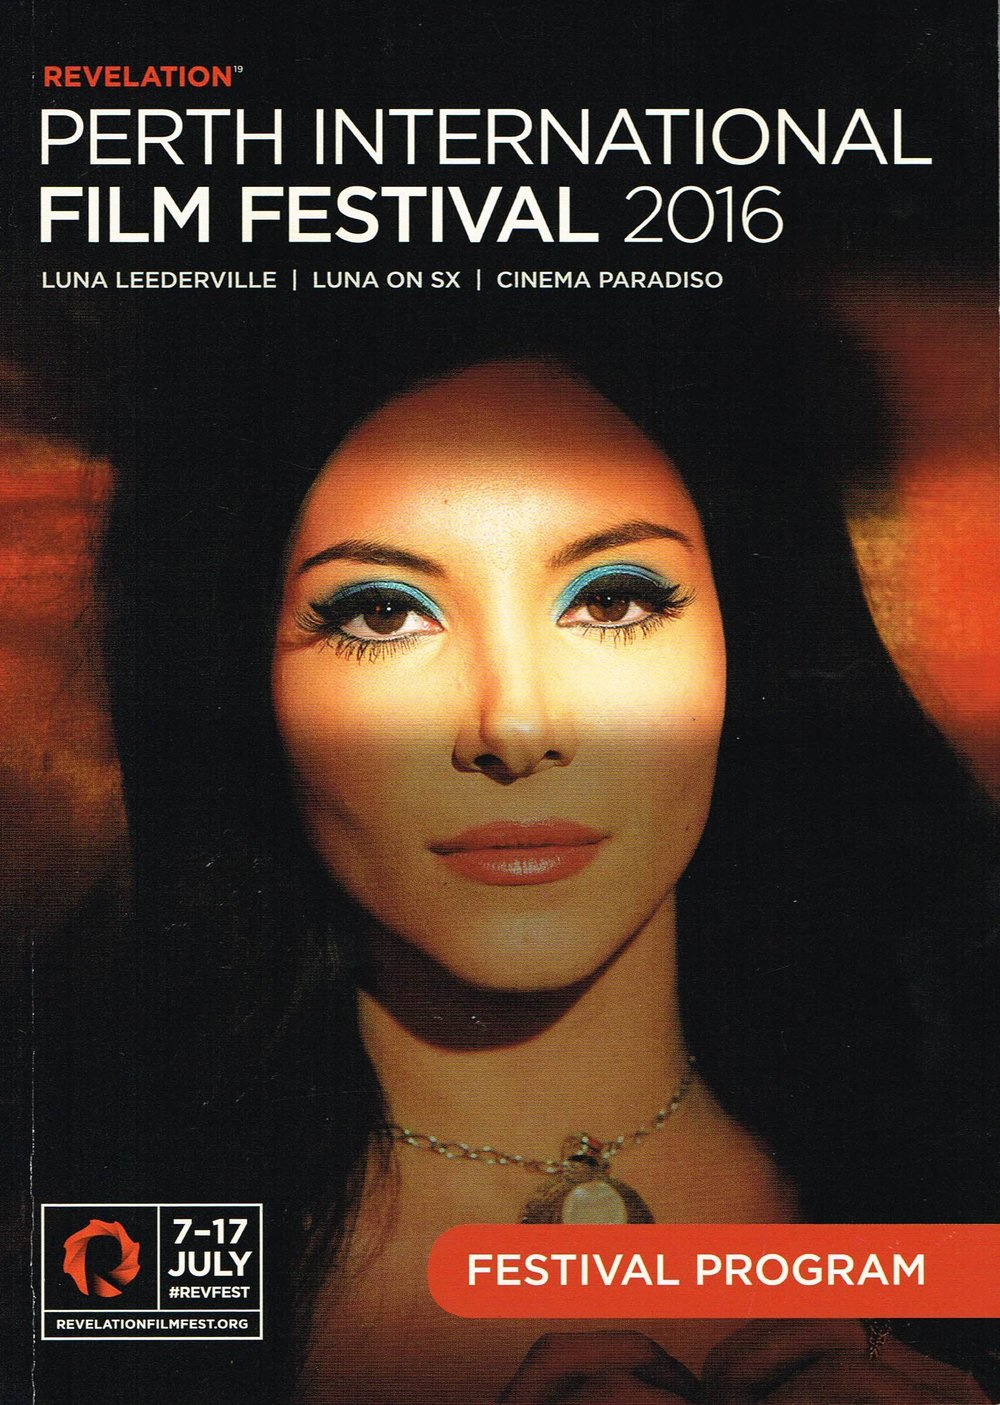 Perth+International+Film+Festival+2016.jpg